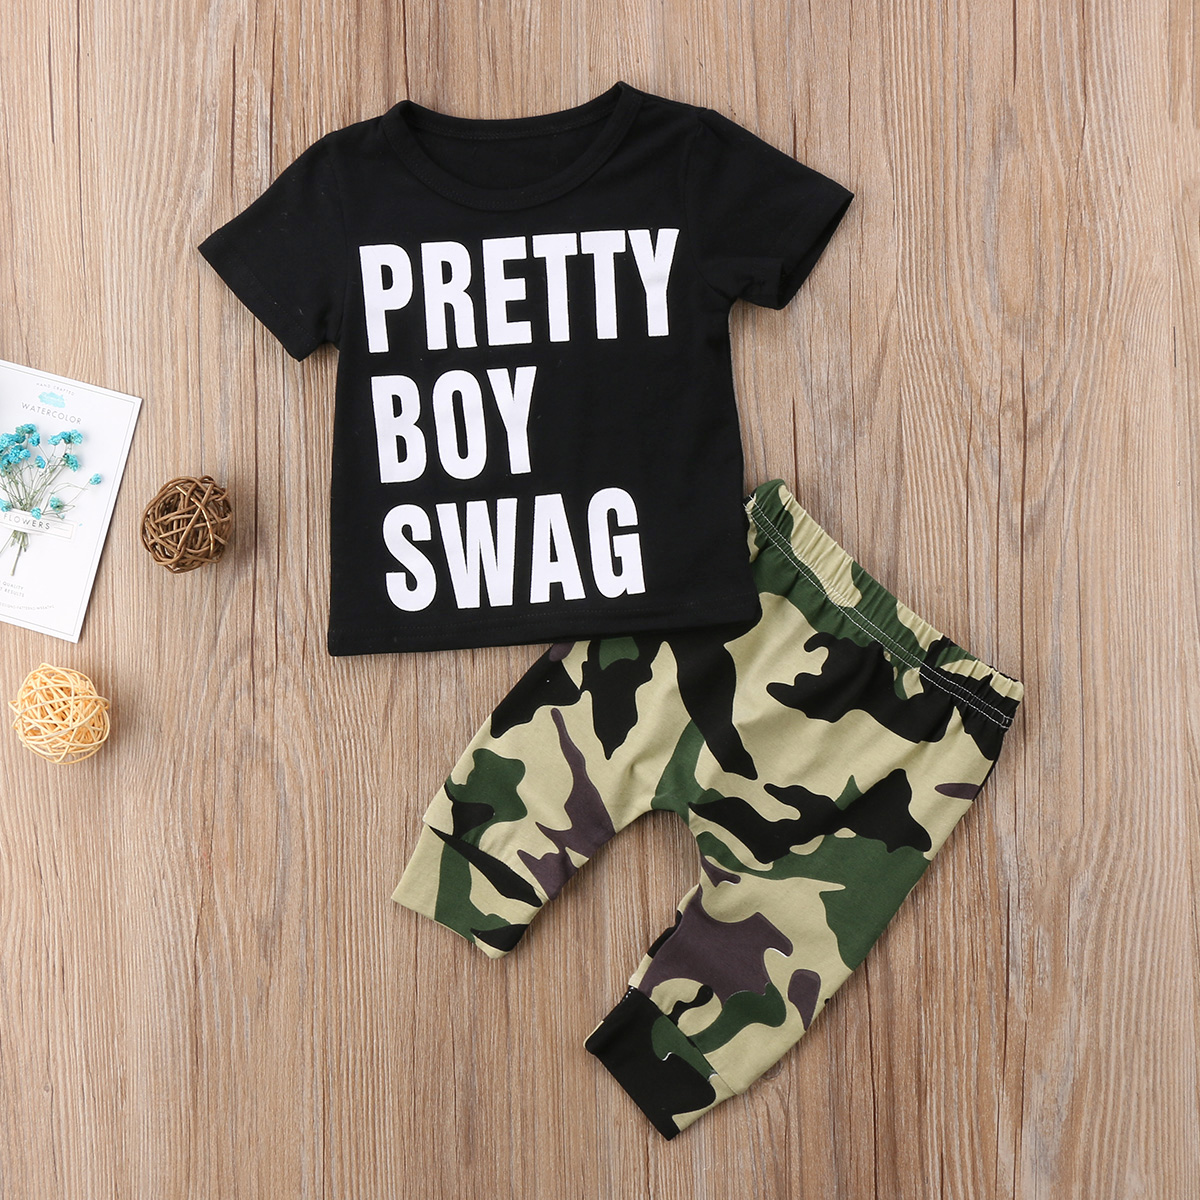 b7301353da88 2018 Pretty Boy Swag Newborn Baby Boys Girl Kids T shirt Tops+Camo Pants  Leggings Outfit-in Clothing Sets from Mother   Kids on Aliexpress.com